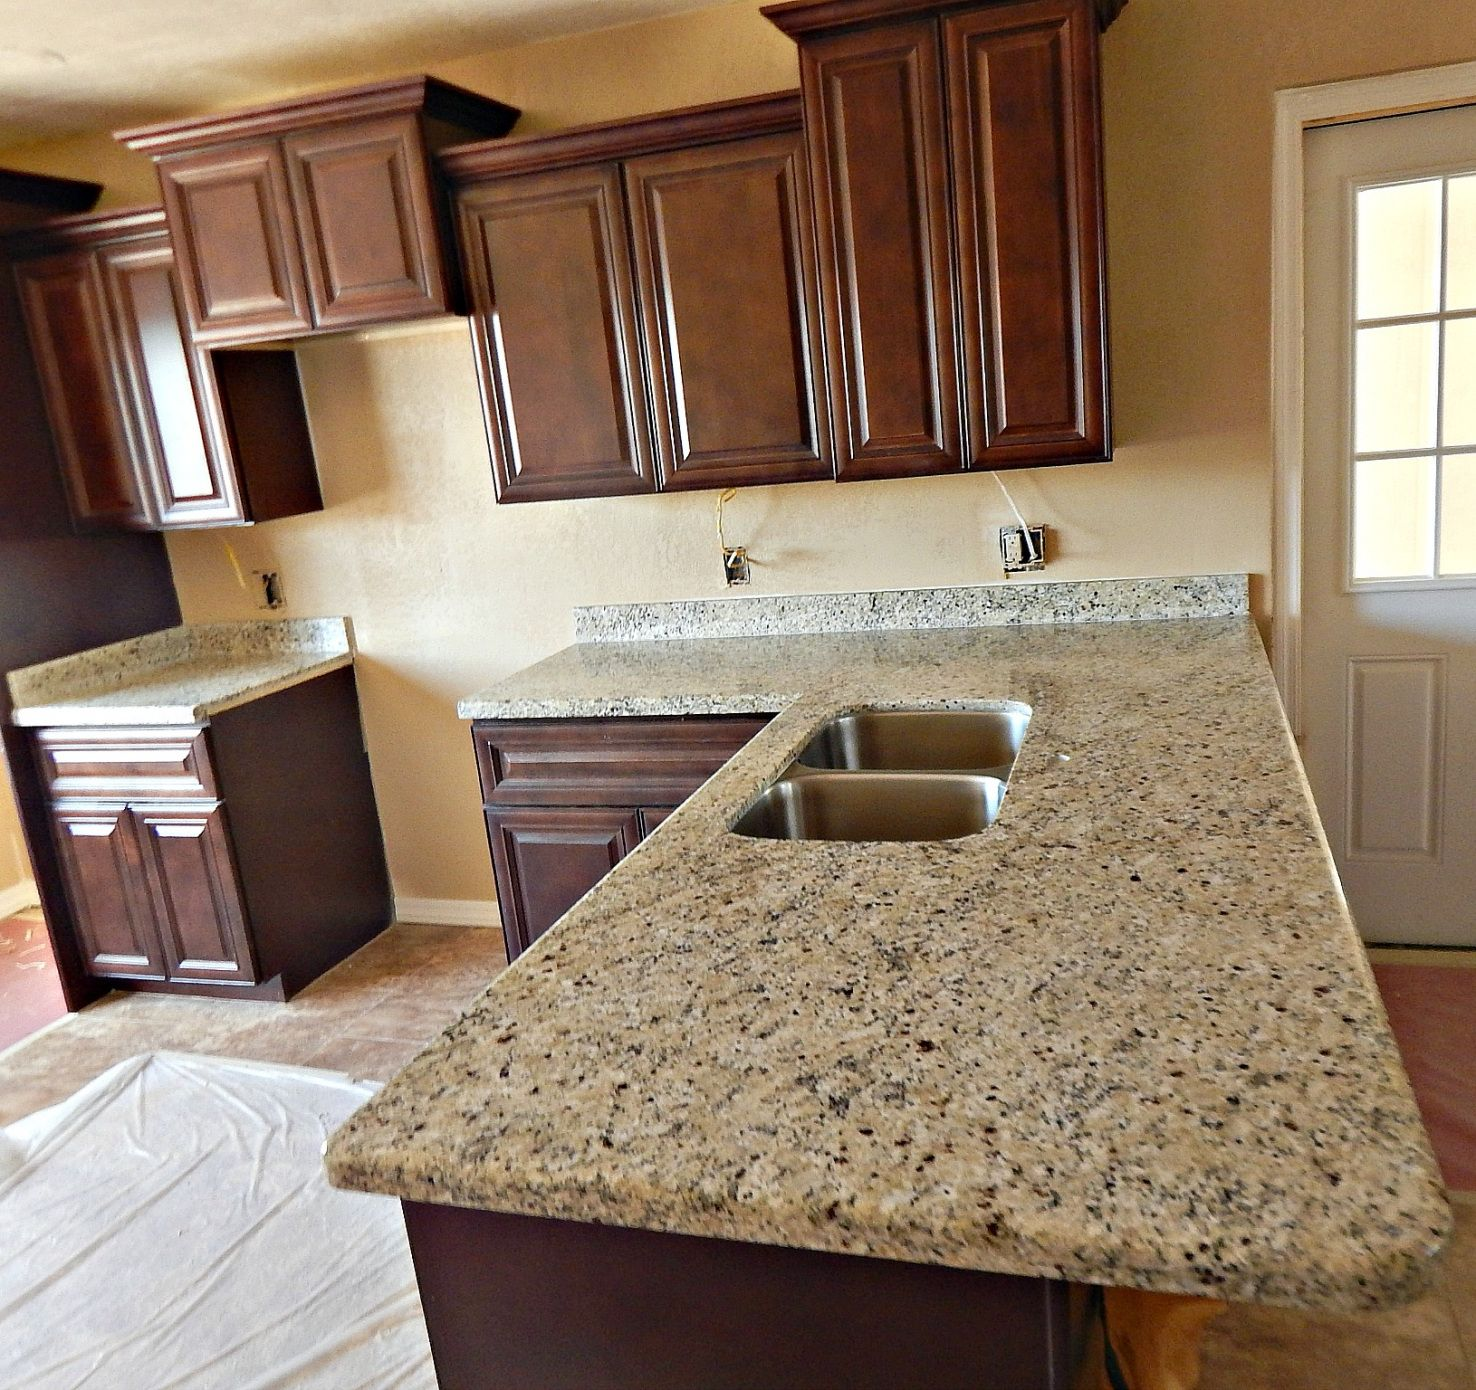 50+ Bainbrook Brown Granite Countertop   Small Kitchen Island Ideas With  Seating Check More At